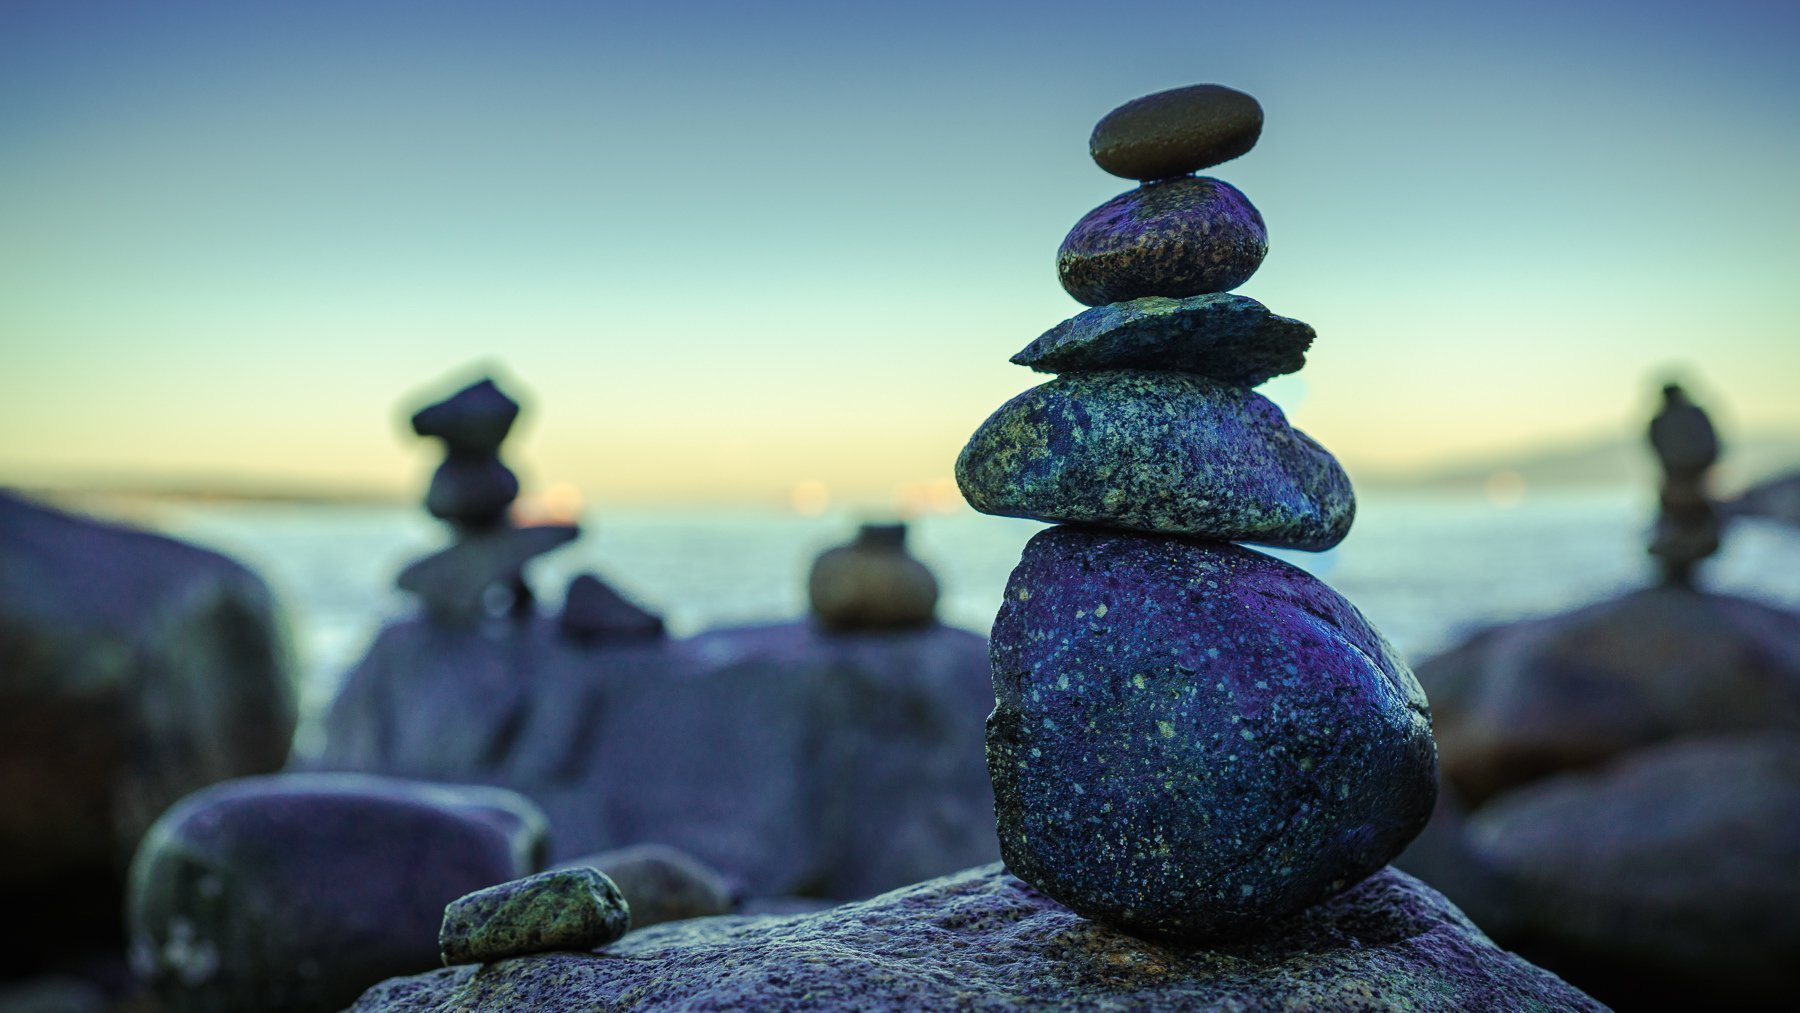 Five rocks balanced on top of each other